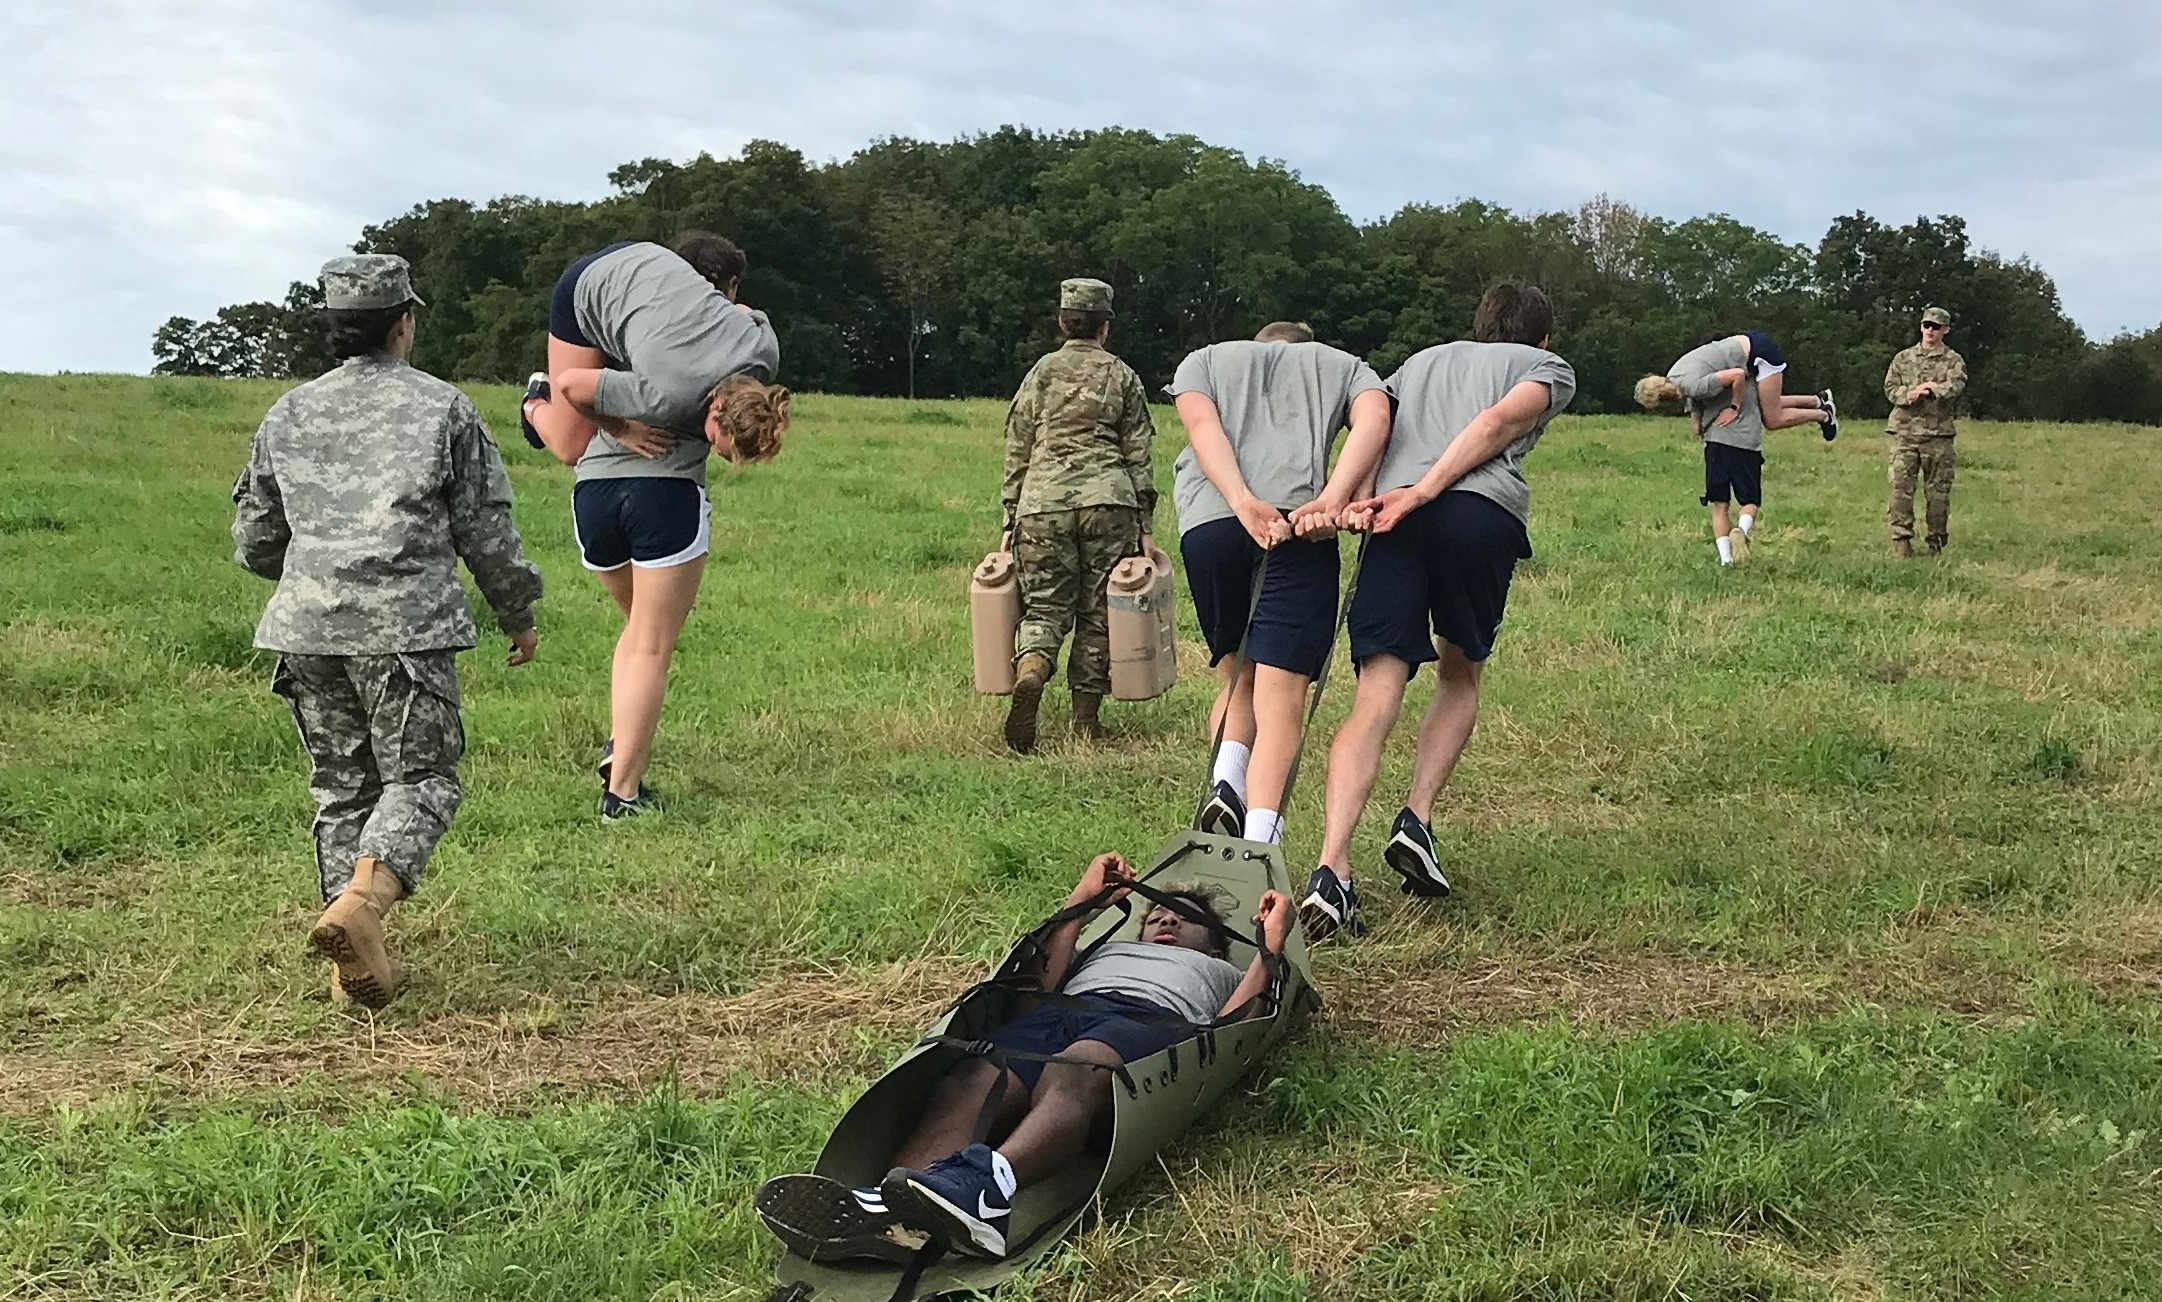 UConn Swim Team execute a casualty evactuation (CASEVAC) exercise